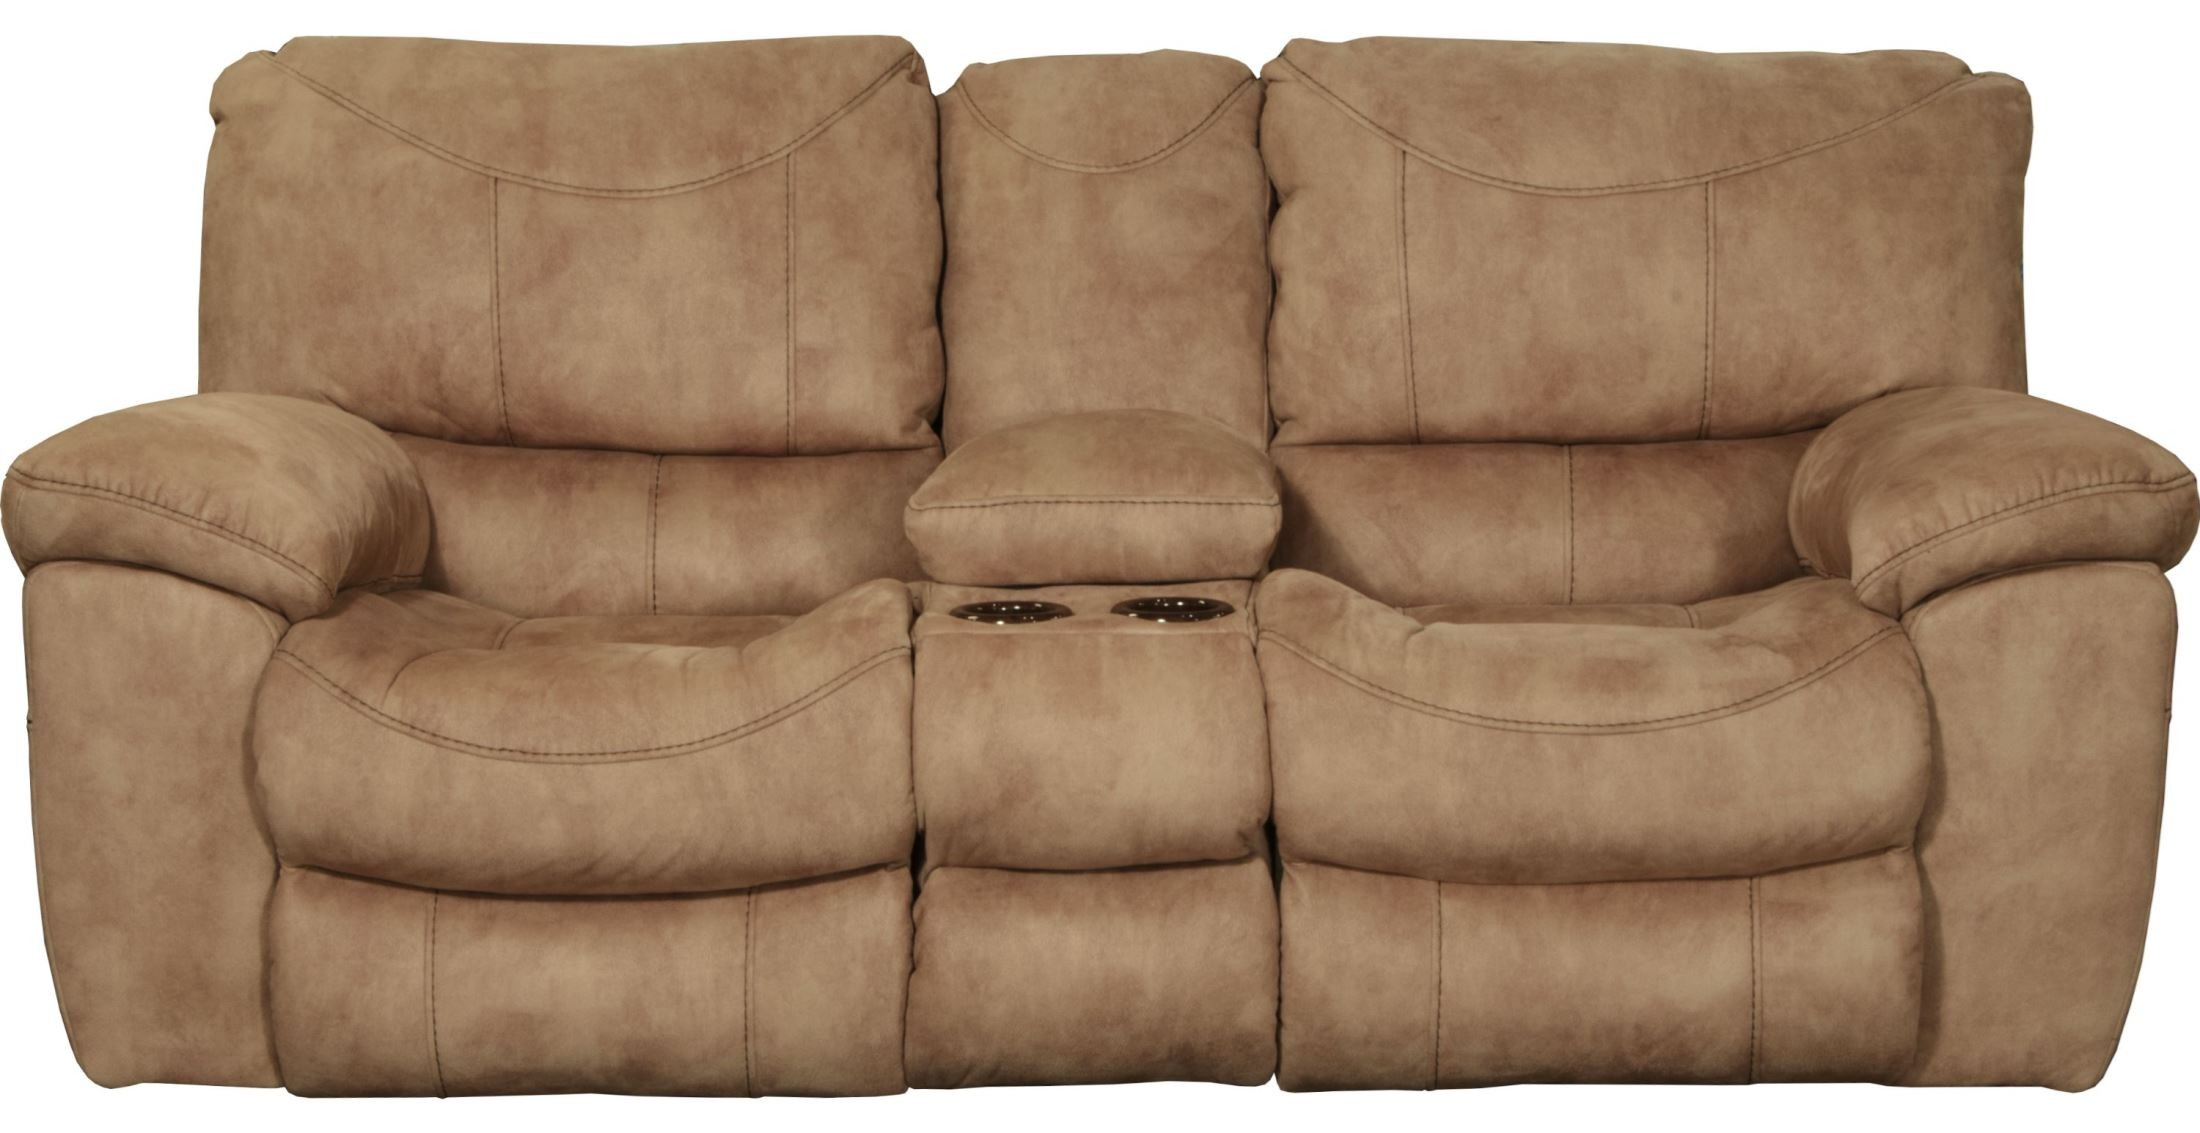 Terrance Caramel Power Reclining Console Loveseat 61589115616 Catnapper